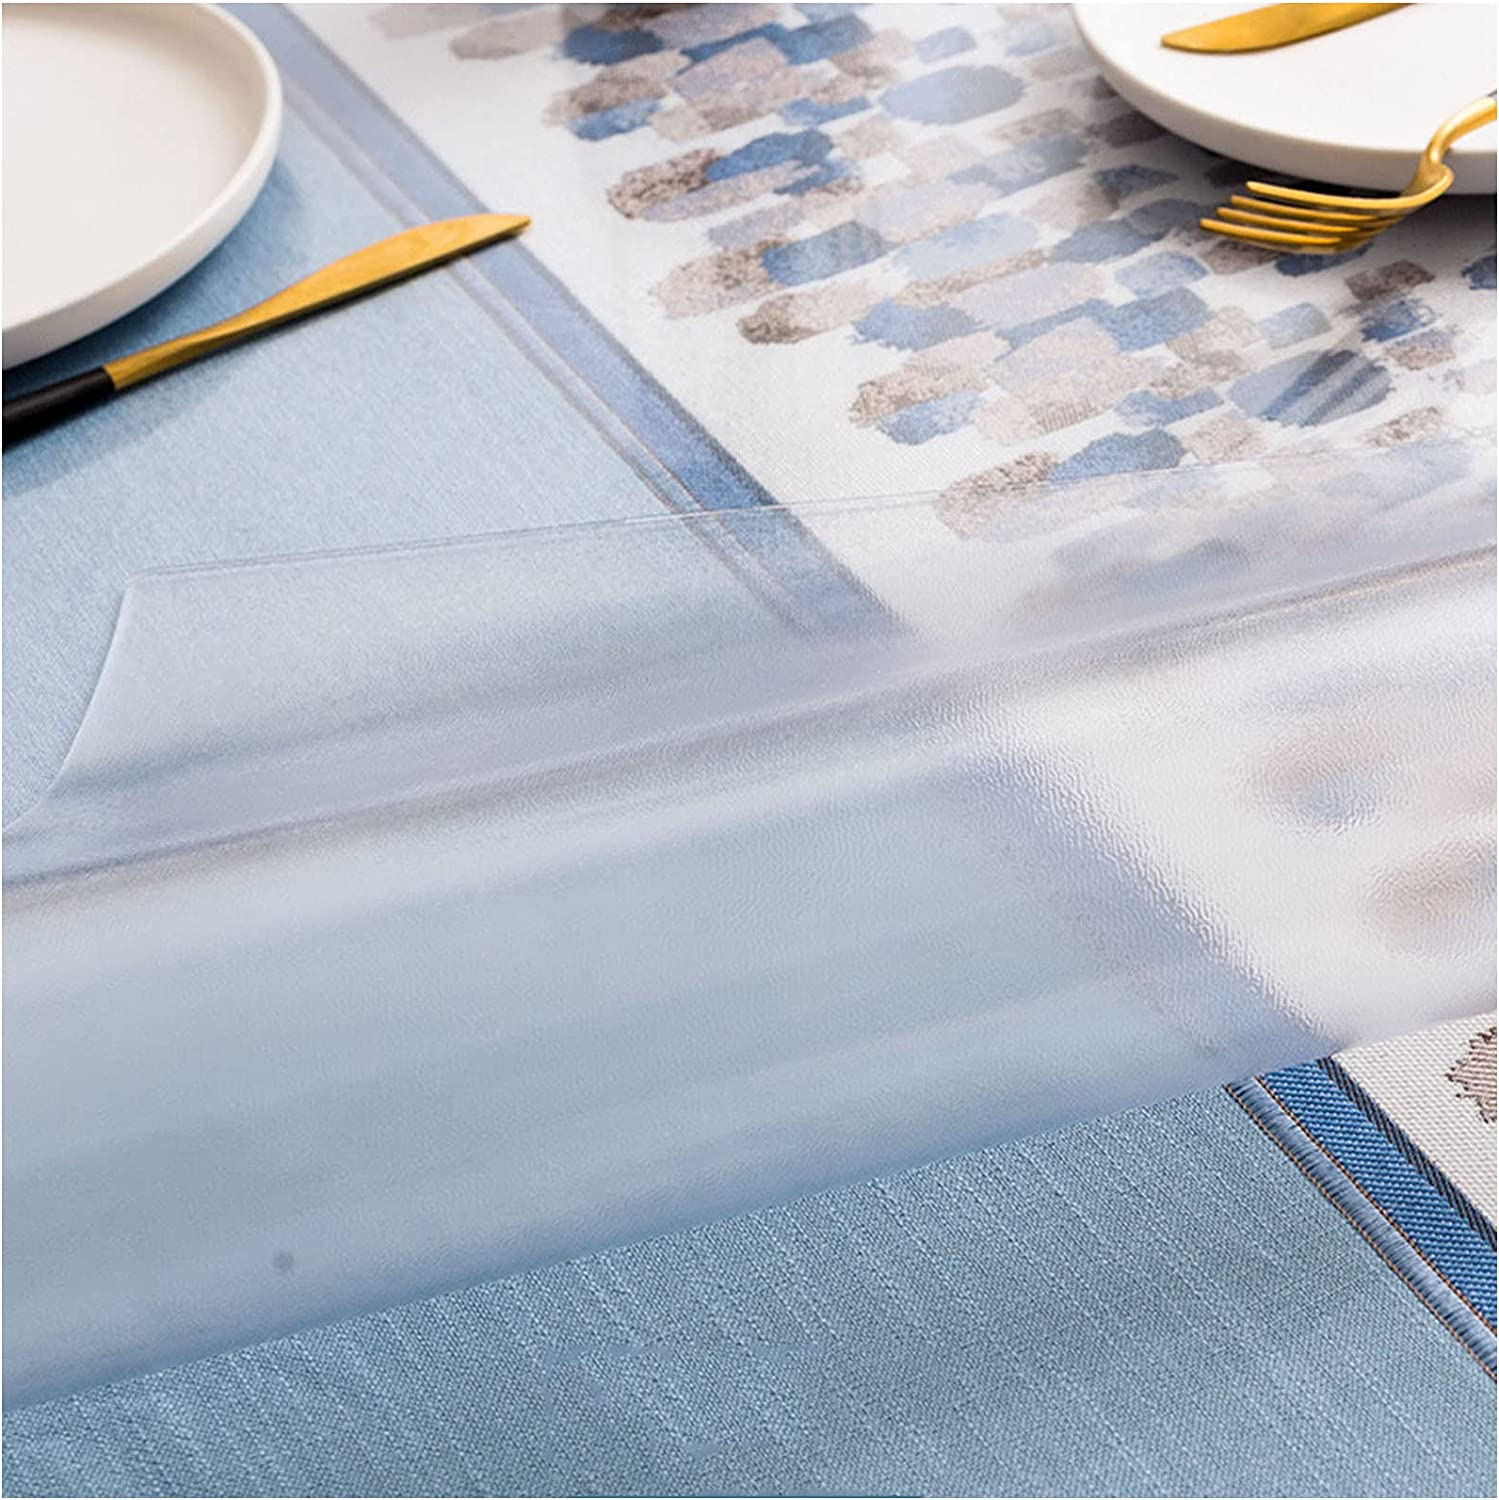 Eco-Friendly Clear Table Protector Film Indianapolis Mall 2Mm T Non-Slip Be super welcome Thickness